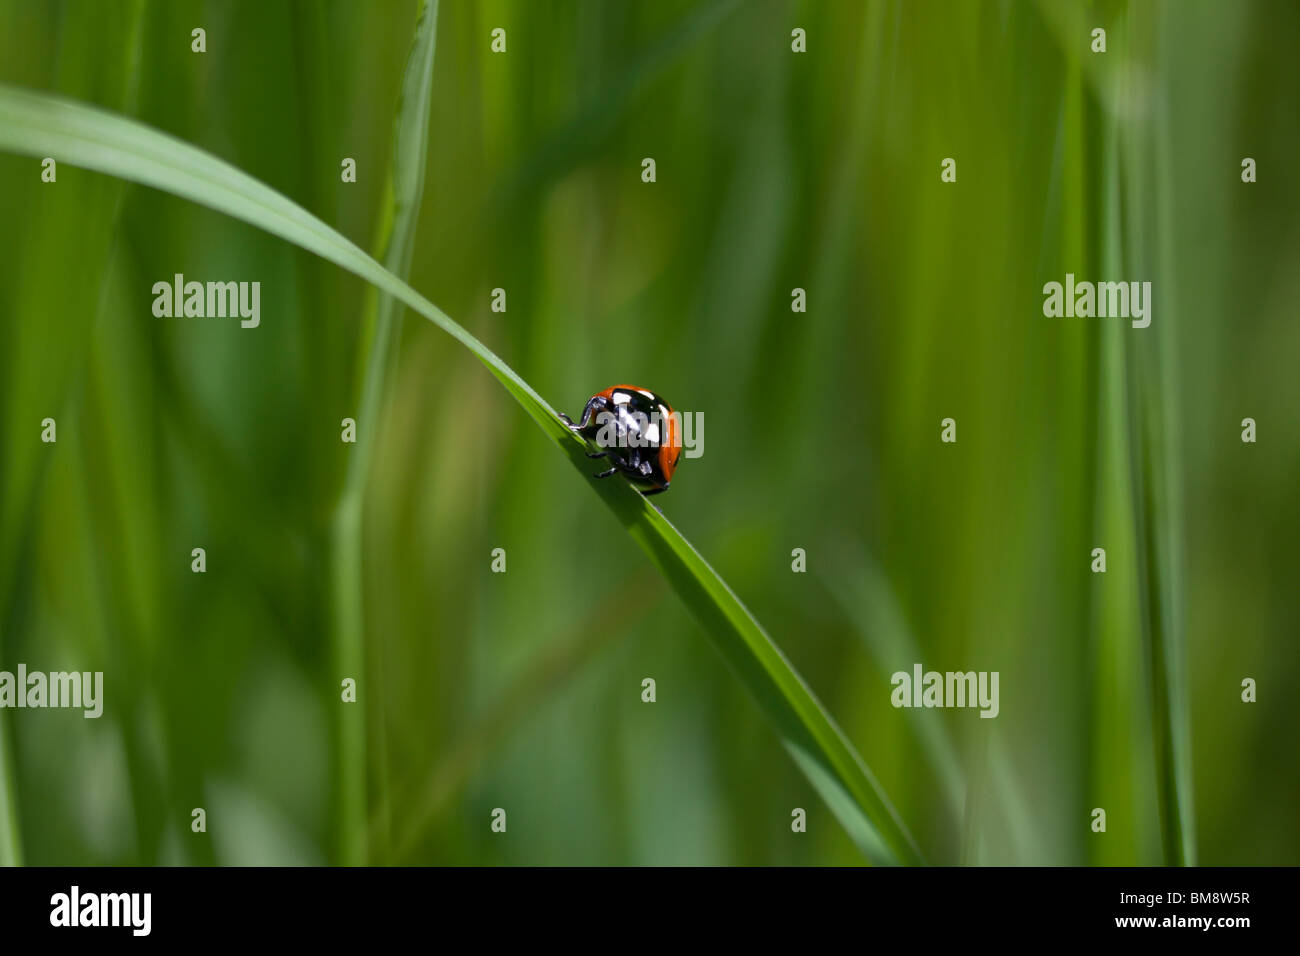 a ladybug on a blade of grass - Stock Image